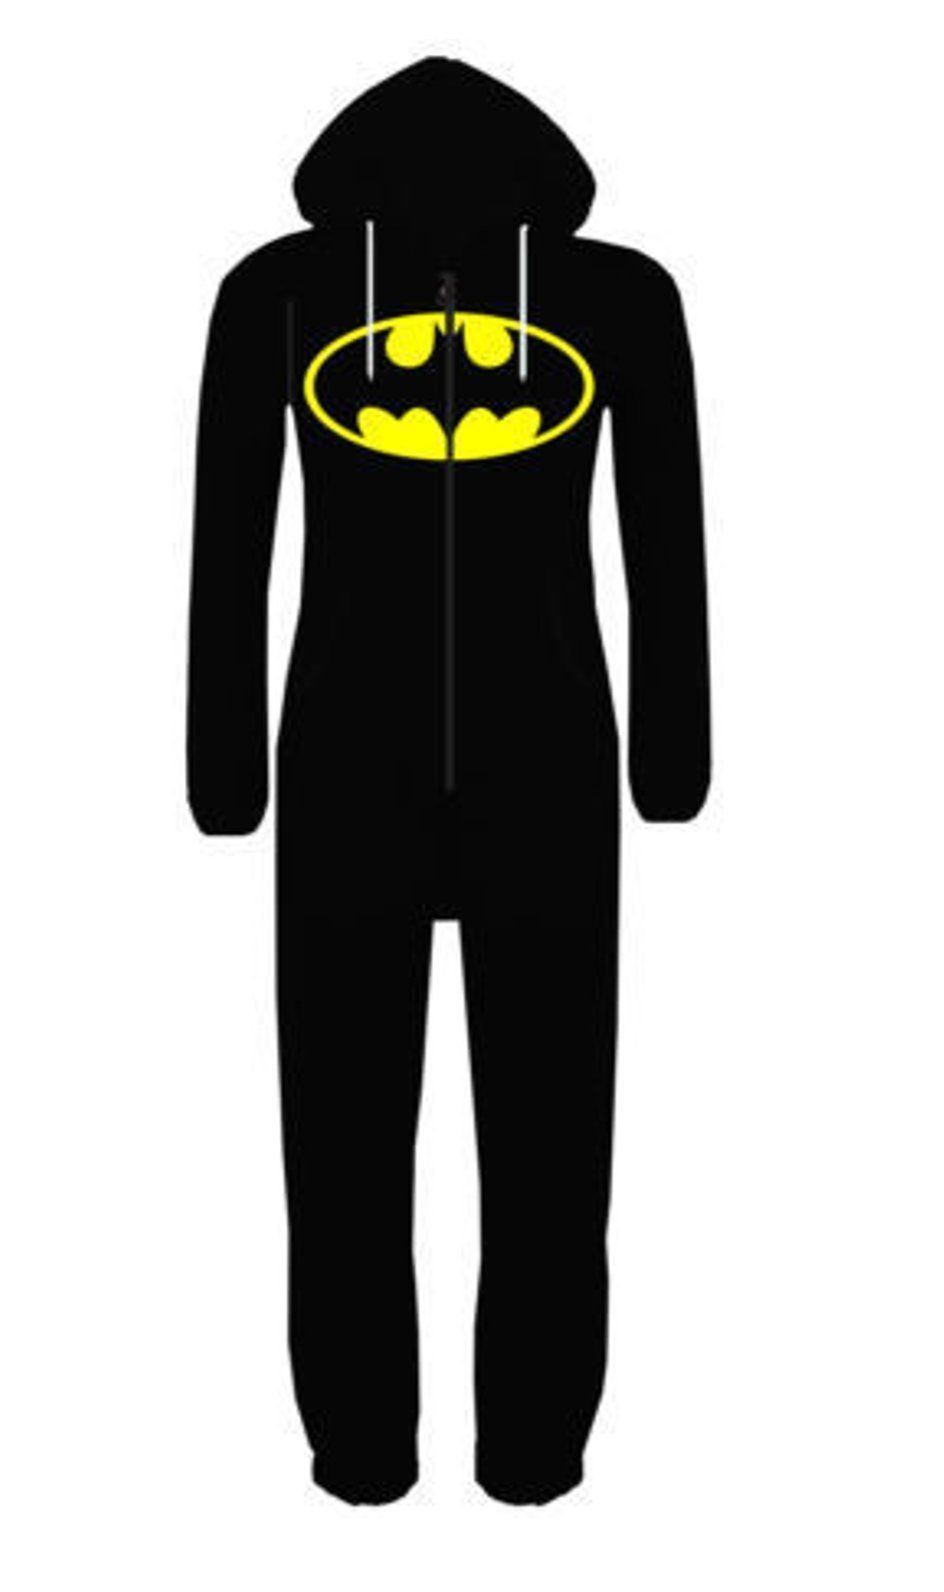 Shop for womens batman onesie pajamas online at Target. Free shipping on purchases over $35 and save 5% every day with your Target REDcard.